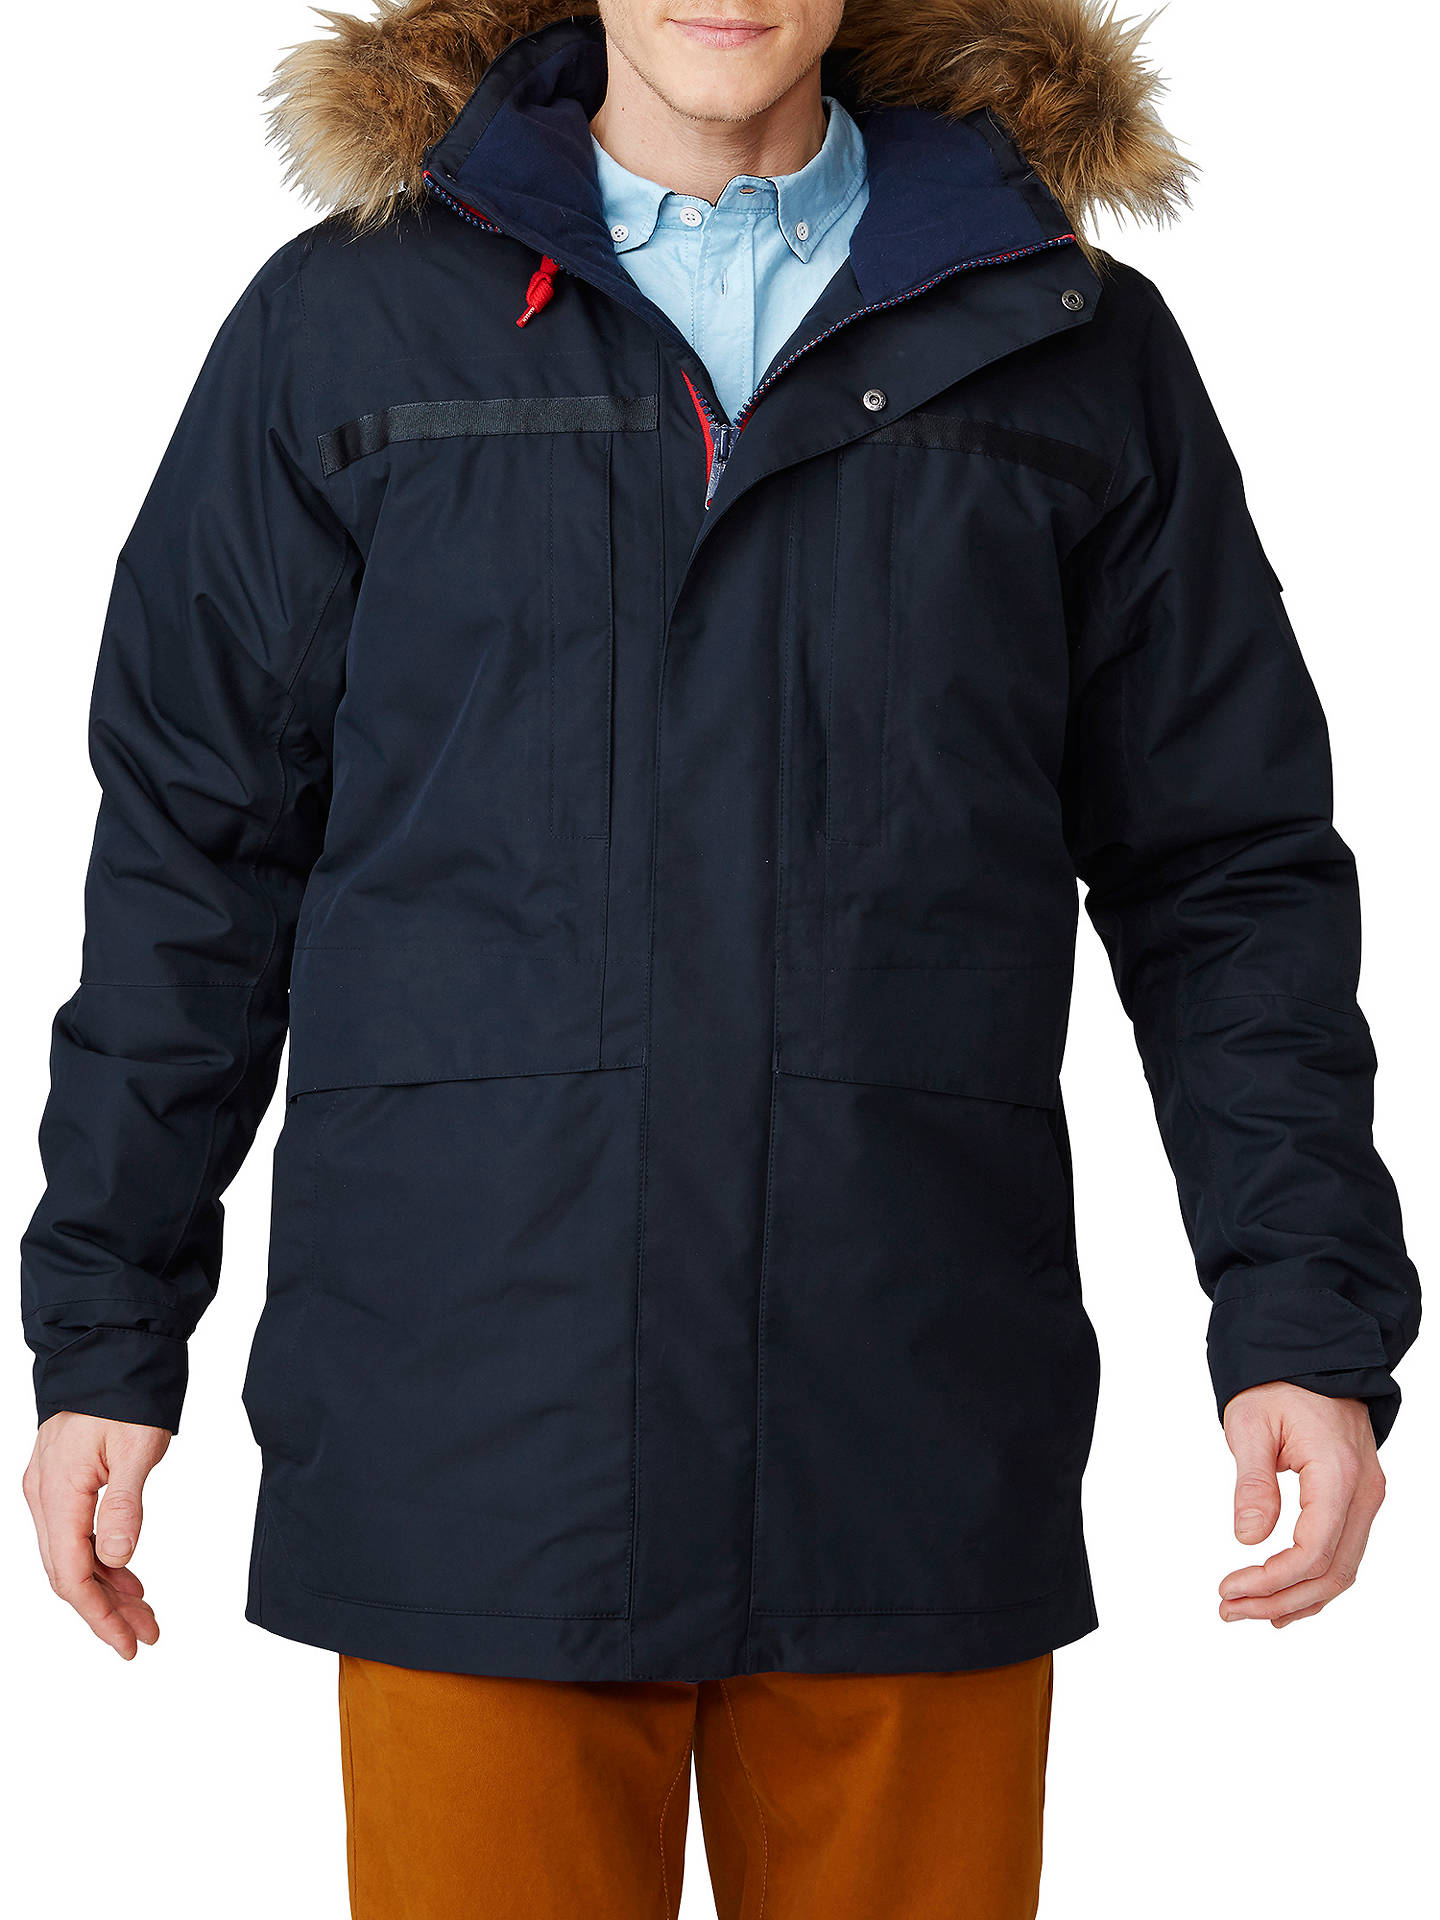 BuyHelly Hansen Coastal 2 Waterproof Men s Parka Jacket 710eaeebb1